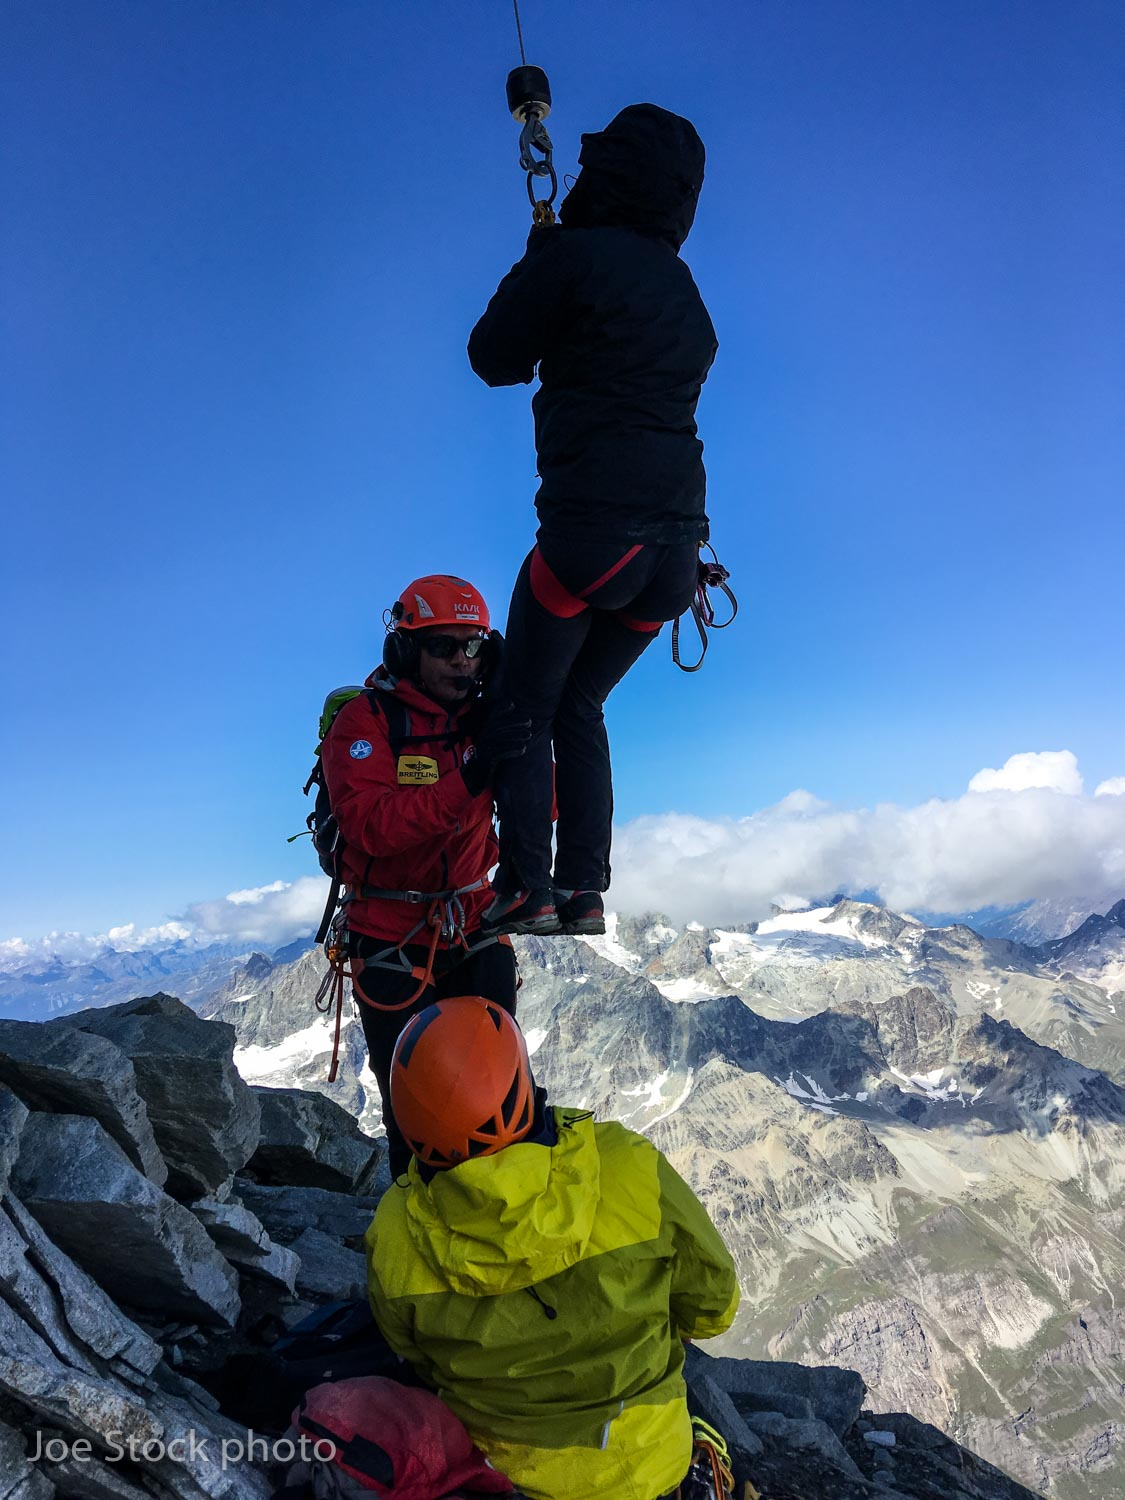 Steep and popular mountains breed accidents. Rescues occur daily on the Matterhorn. This woman fell 60 feet and stopped on a small ledge on the east face next to me. The helicopter arrived in 20 minutes. The Swiss rescue dude was a workmate of Andrew's at Canadian Mountain Holidays.